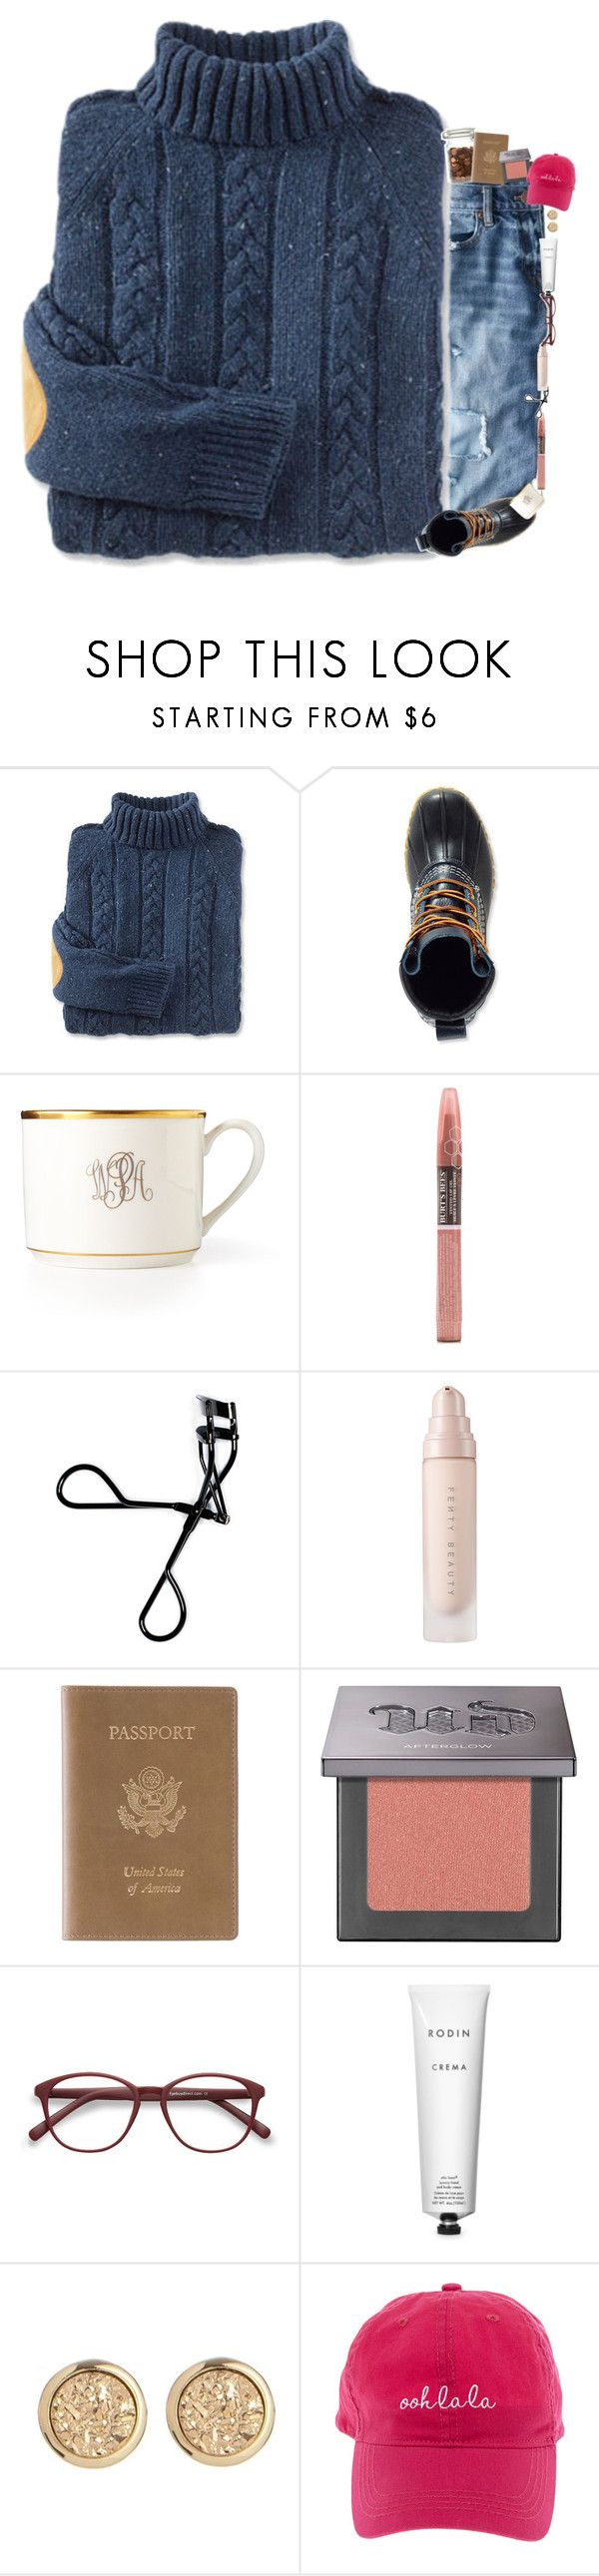 """""""Ooh la la"""" by mac-moses ❤ liked on Polyvore featuring J.Crew, L.L.Bean, Pickard, Burt's Bees, Bobbi Brown Cosmetics, Royce Leather, Urban Decay, EyeBuyDirect.com and Rodin"""